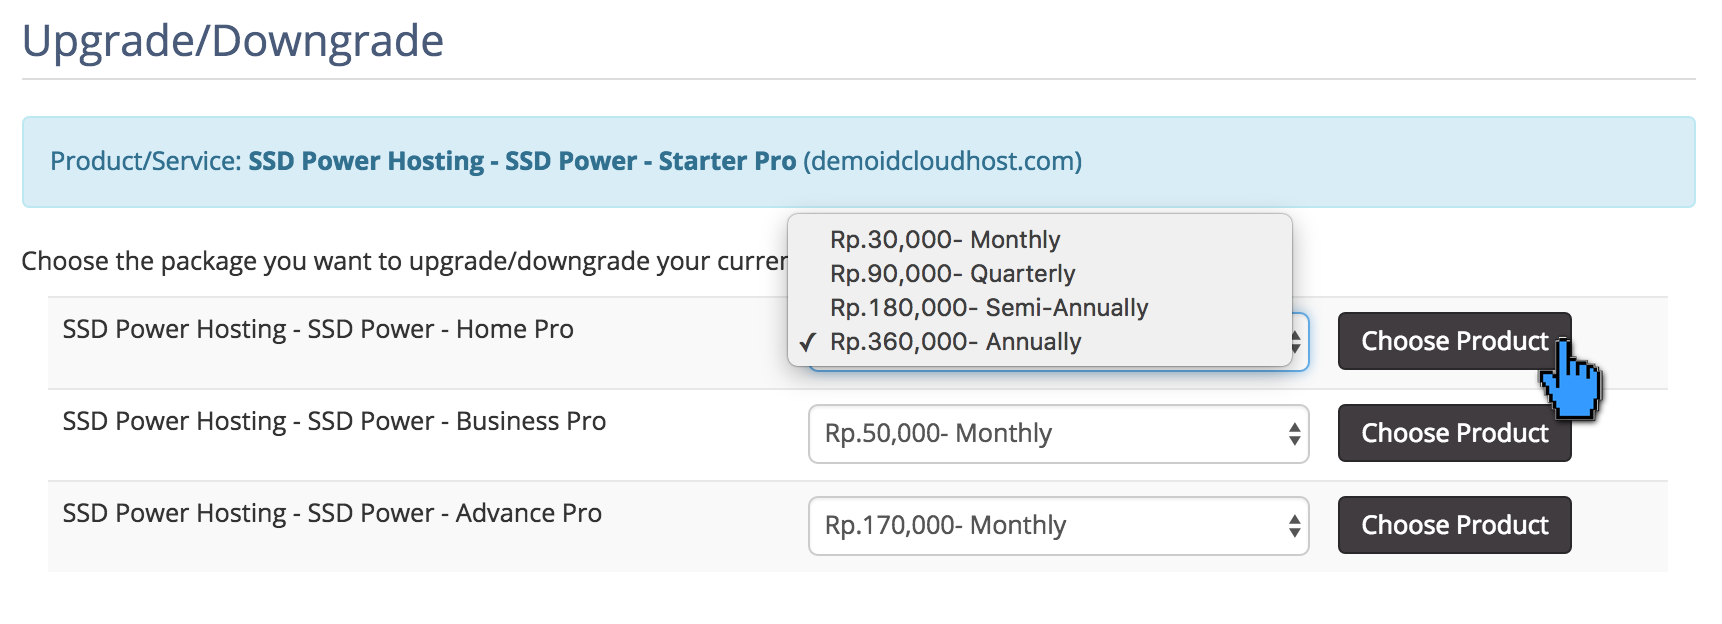 Cara Upgrade dan Downgrade Hosting 6